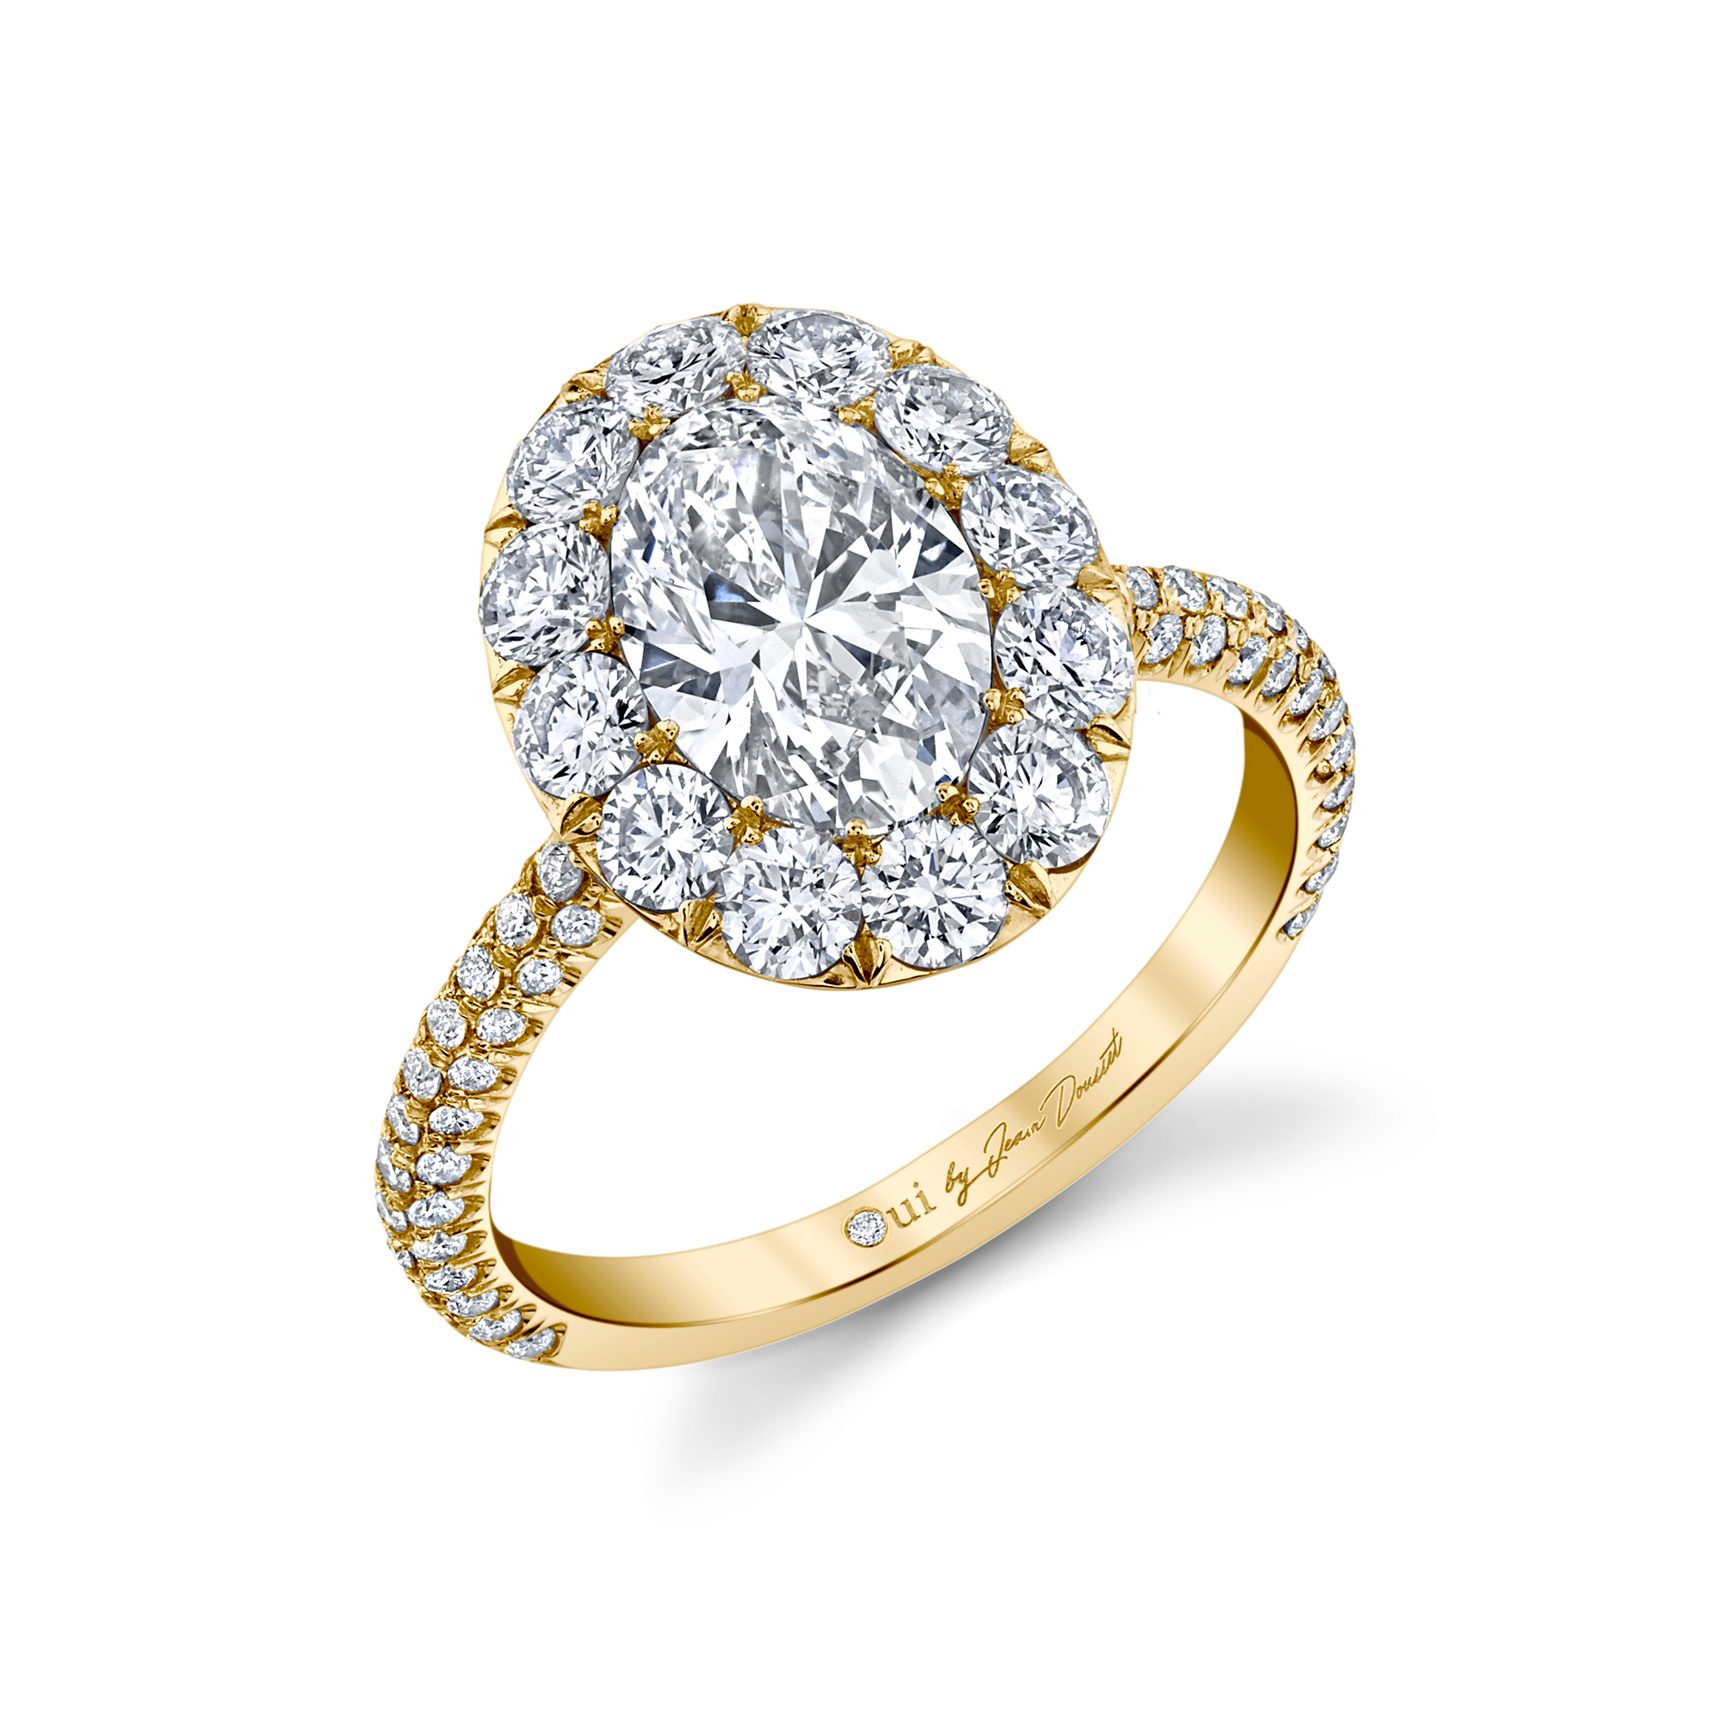 Jacqueline Oval Seamless Solitaire® Engagement Ring with diamond pavé in 18k Yellow Gold Profile View by Oui by Jean Dousset